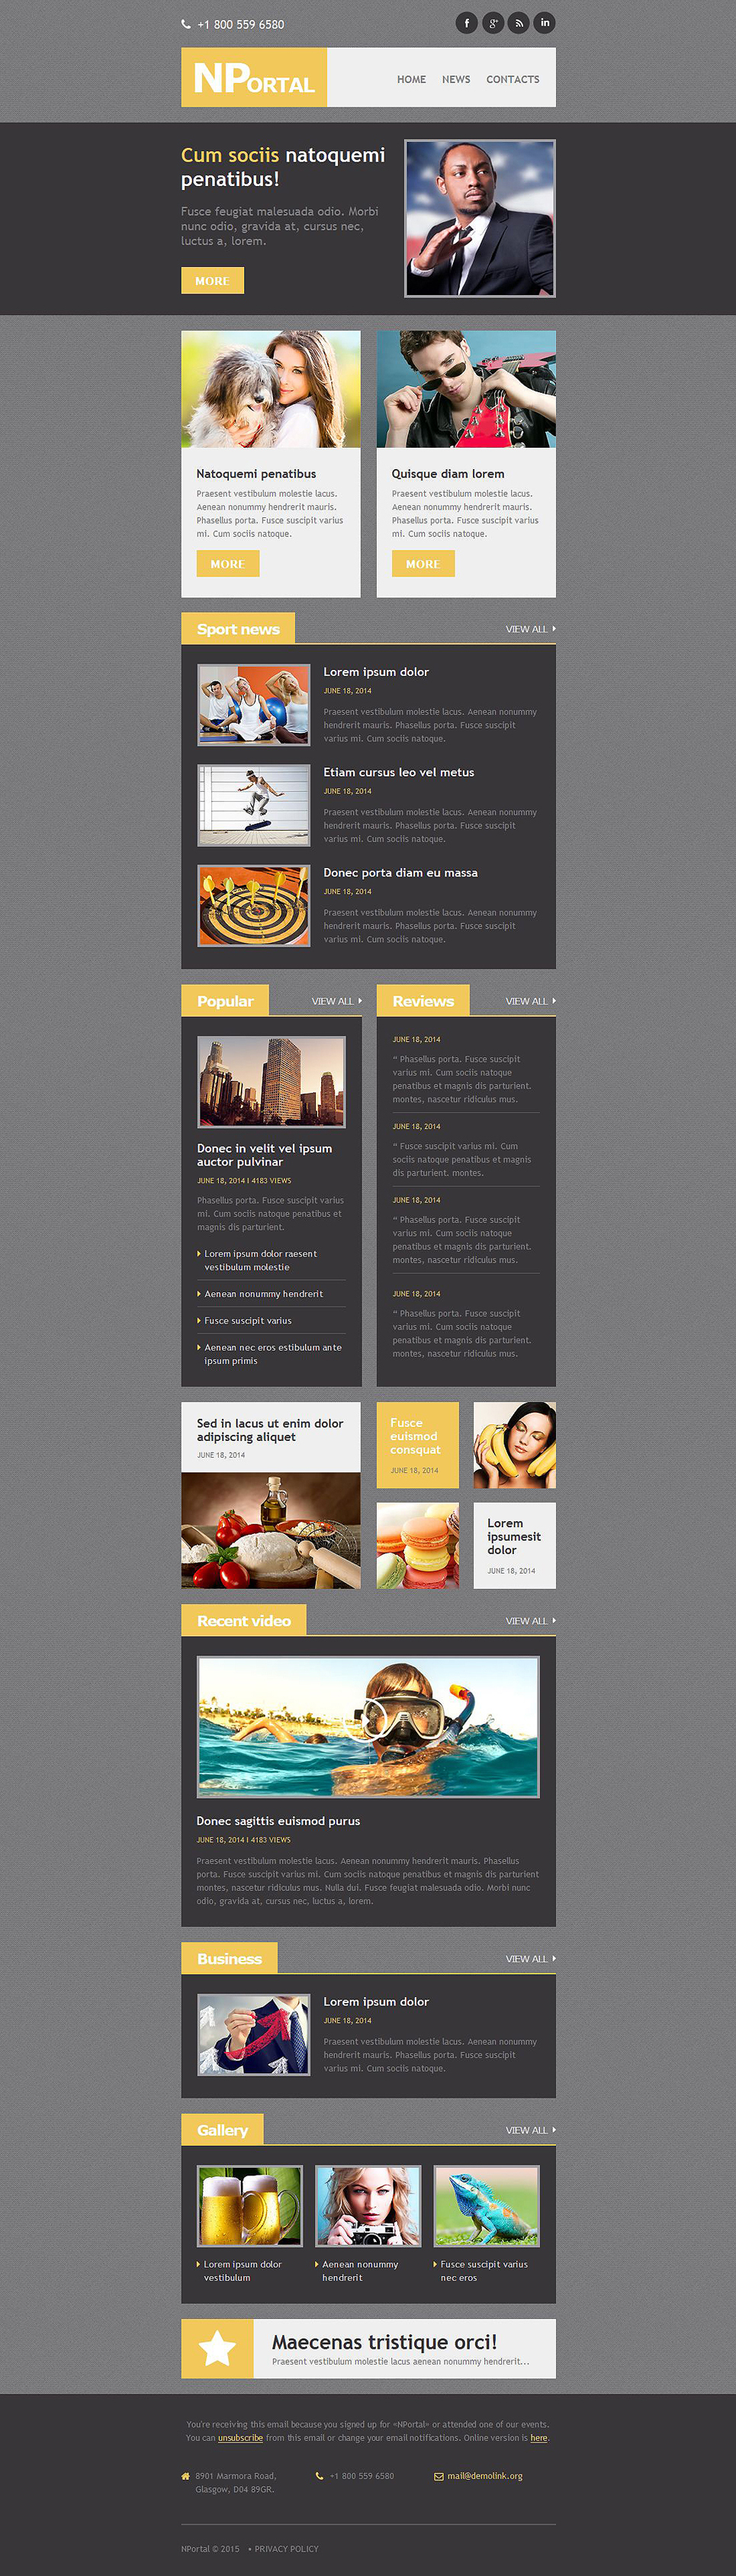 News Portal Responsive Newsletter Template email